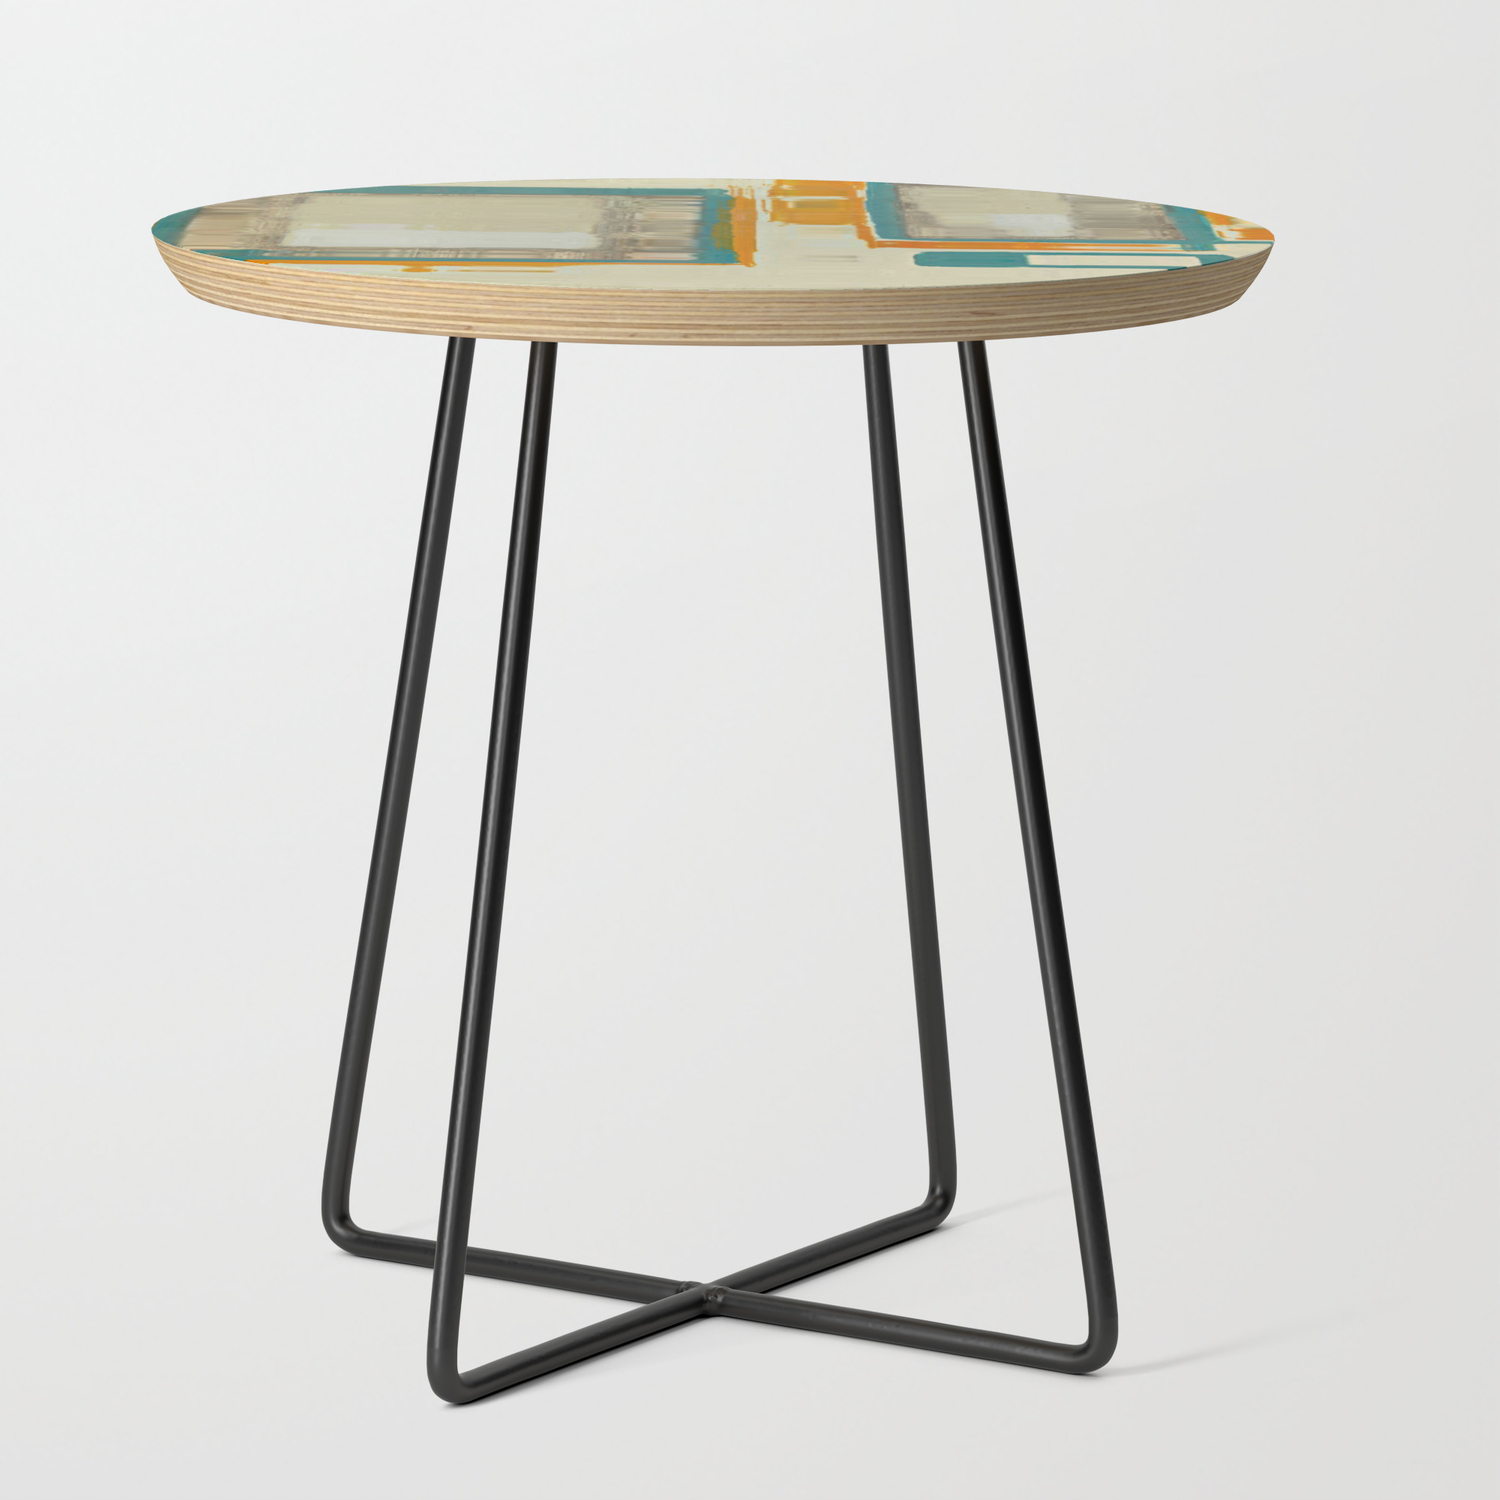 Mid Century Modern Blurred Abstract Art Best Most Popular By Corbin Henry Side Table By Corbinhenry